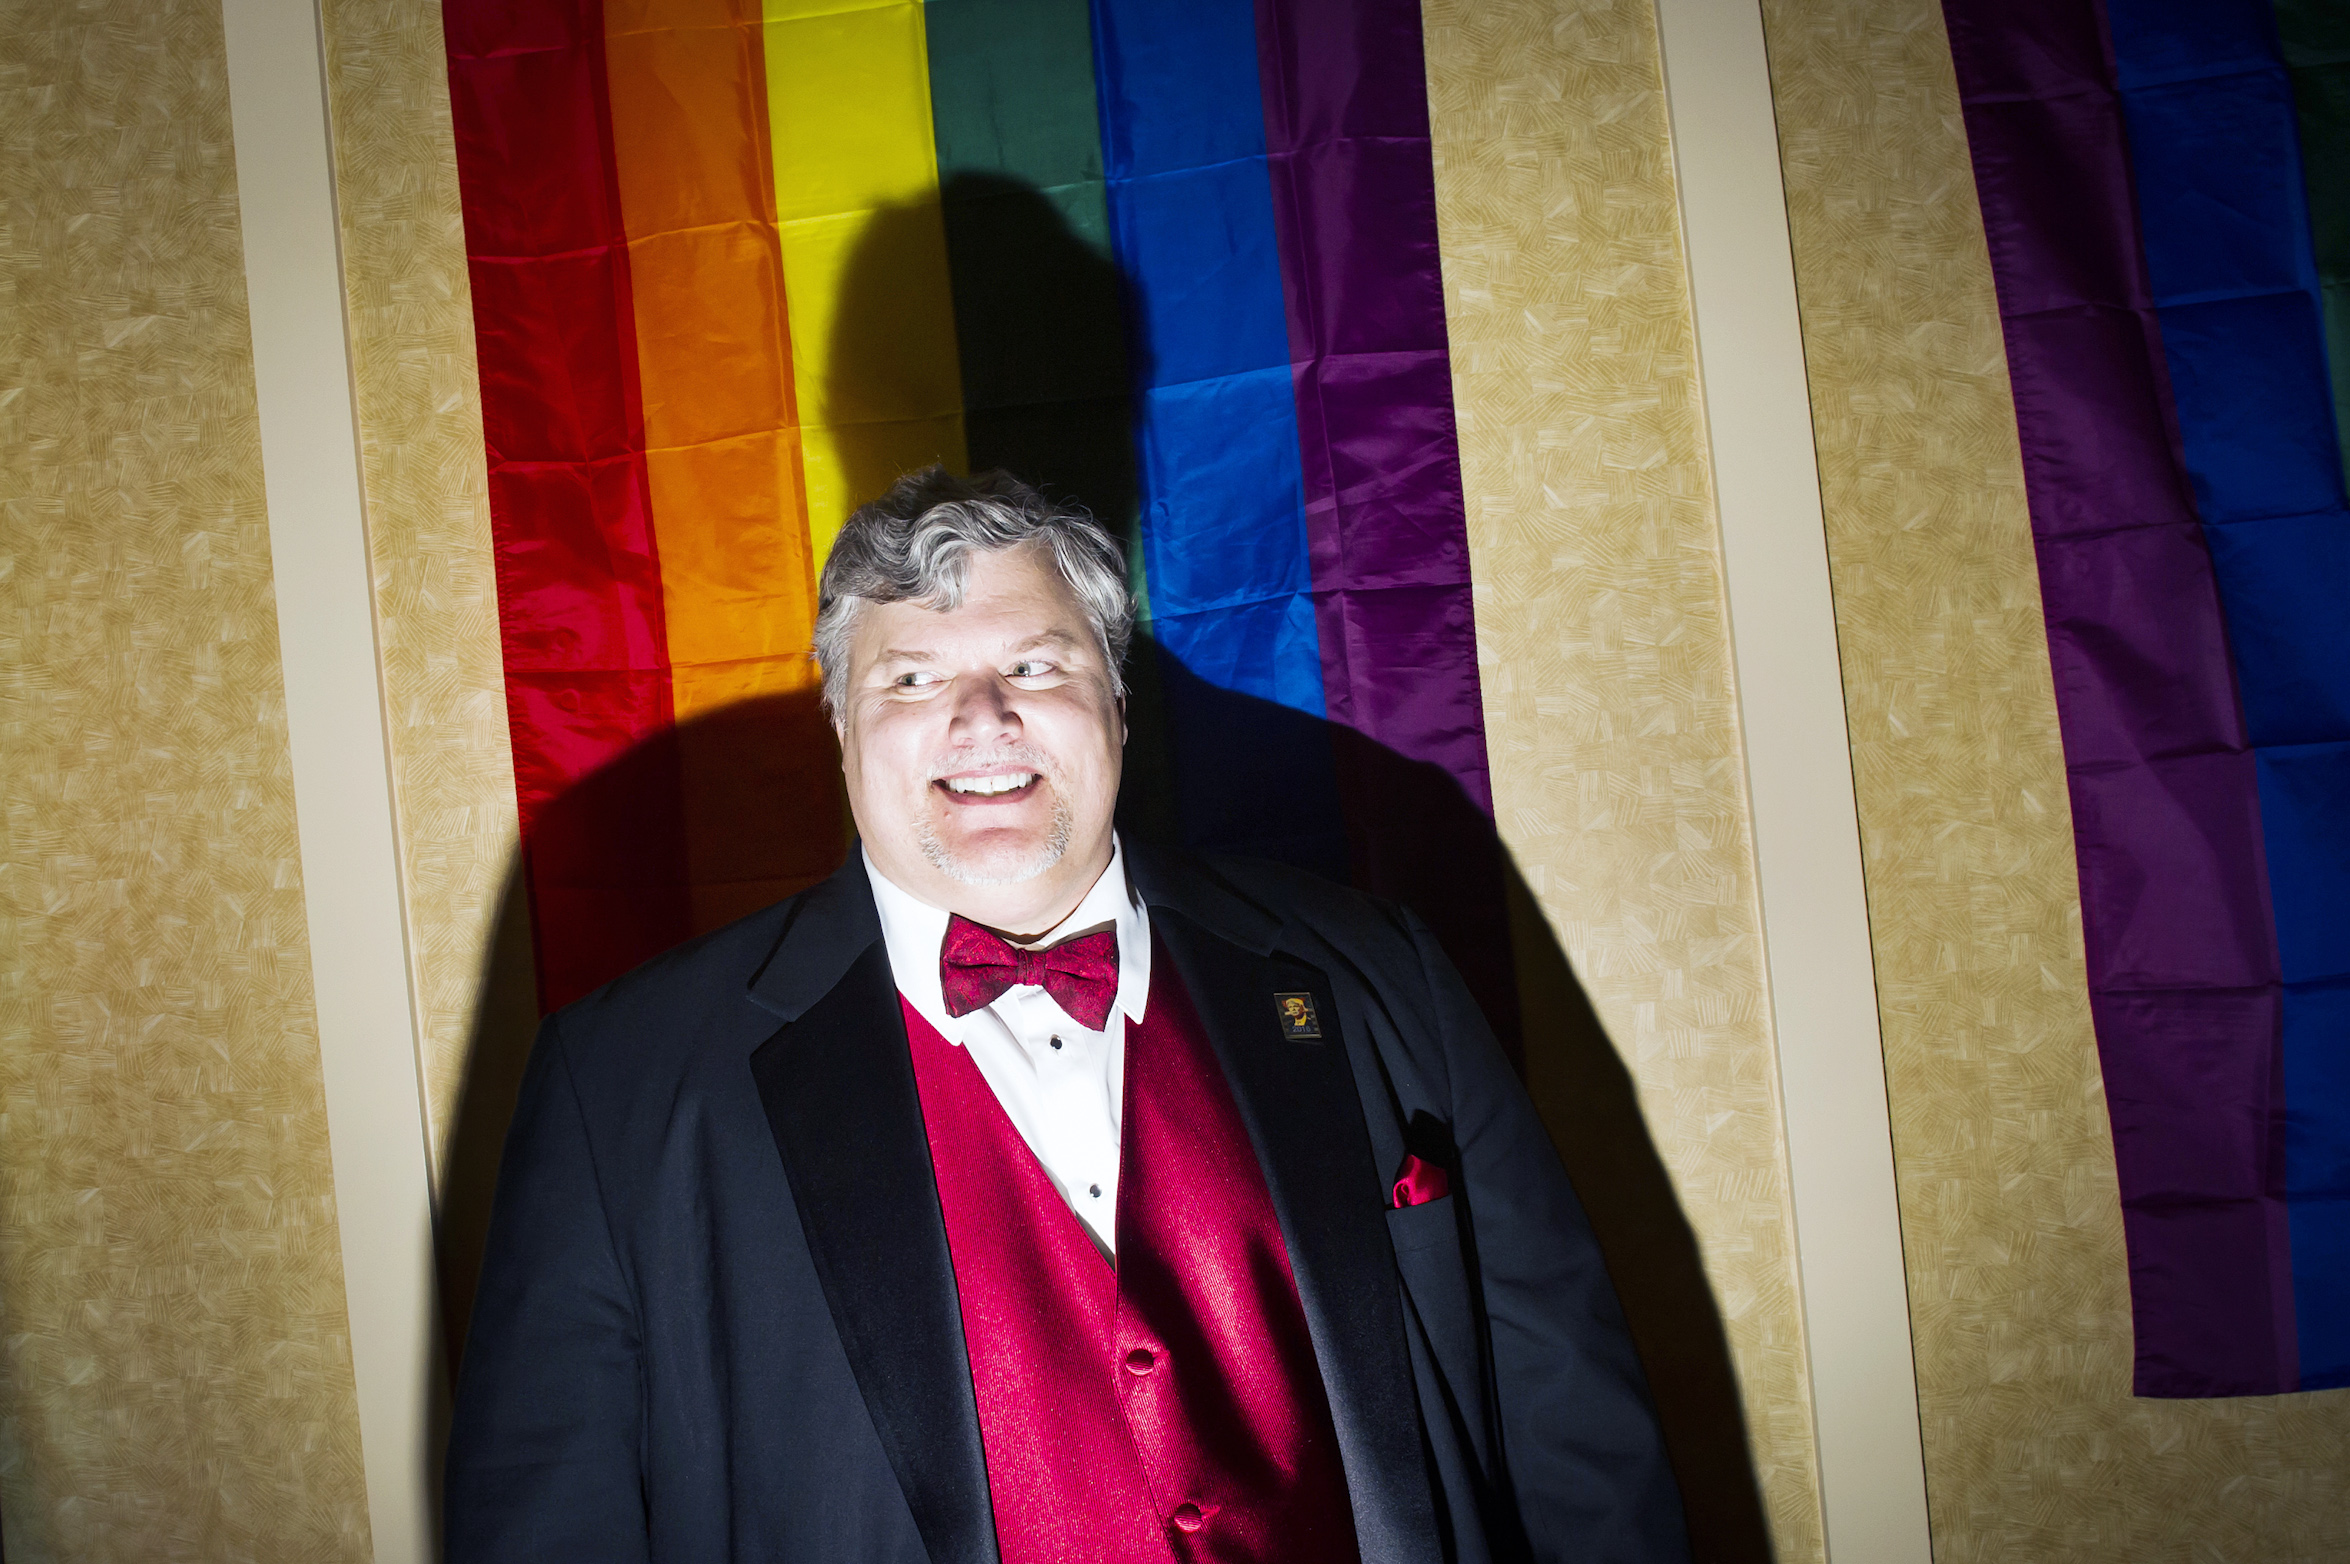 Robert Luke Antonek at the Inaugural Deploraball hosted by Gays for Trump at the Bolger Center in Potomac, Maryland on January 20, 2017.